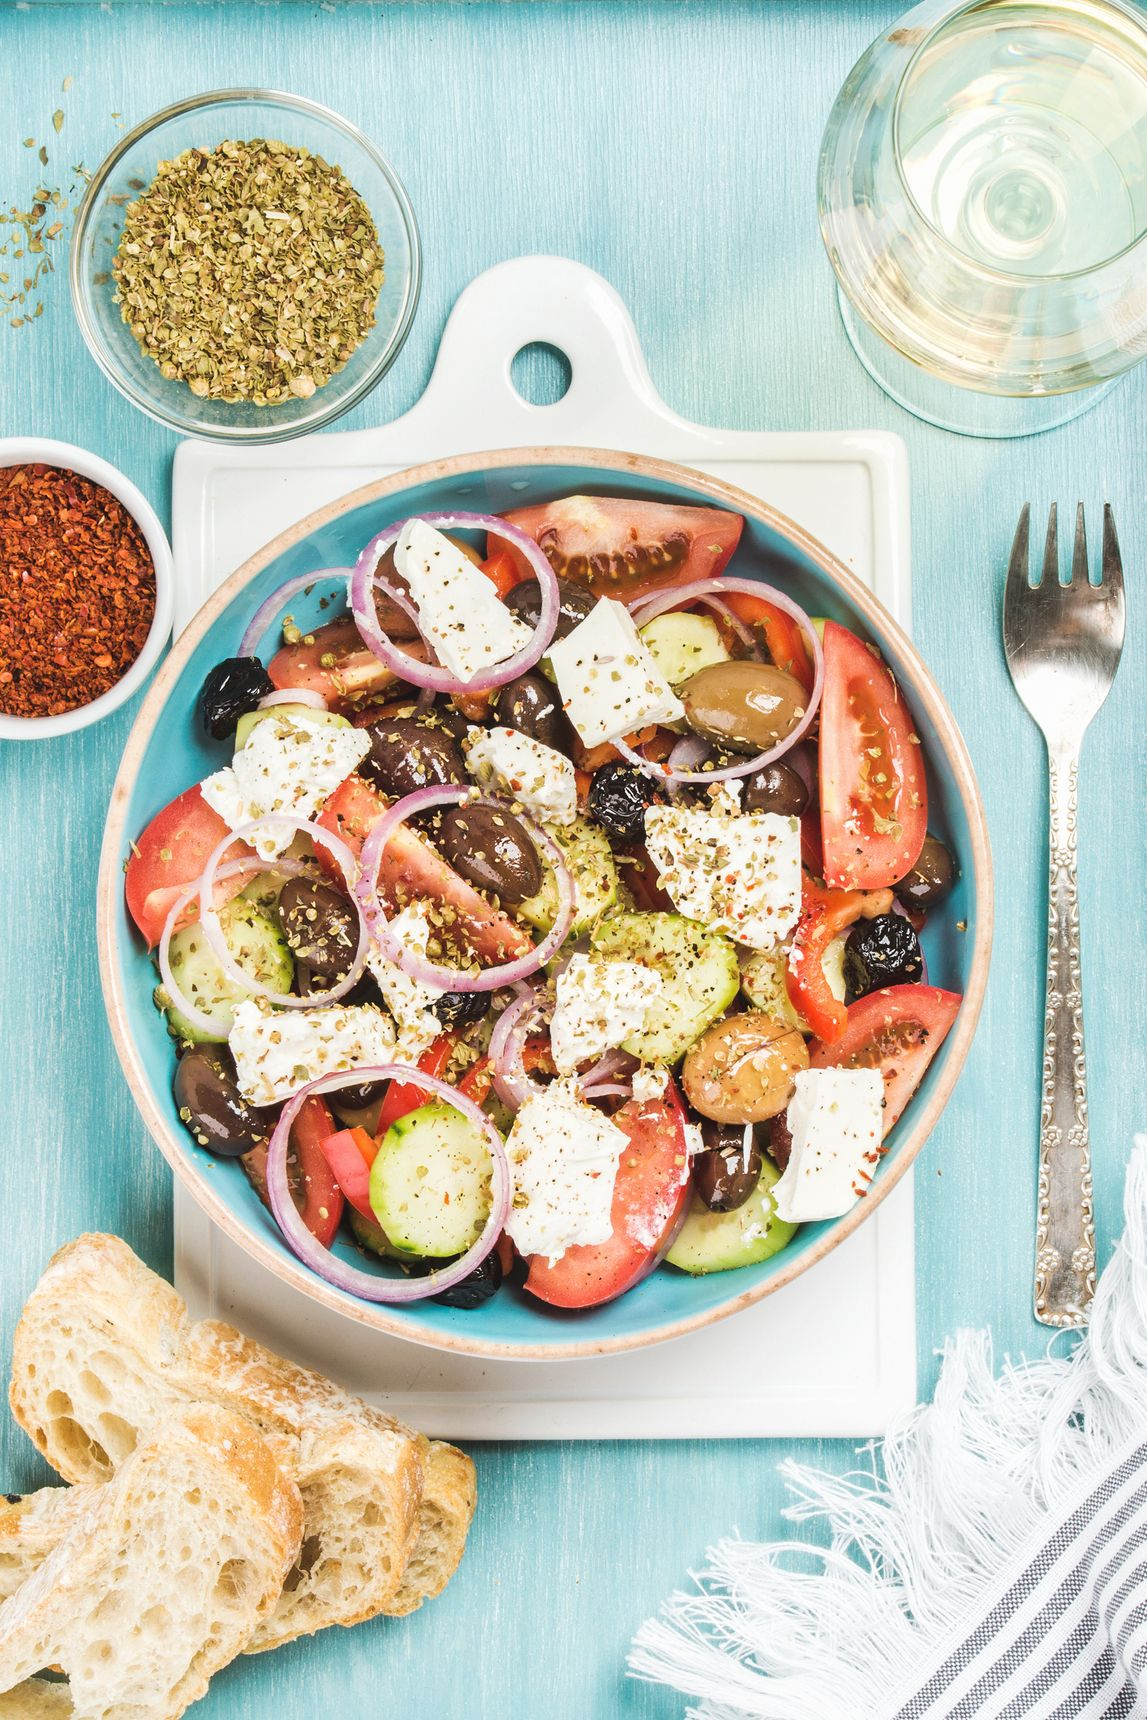 Greek salad with bread, oregano, pepper and glass of wine